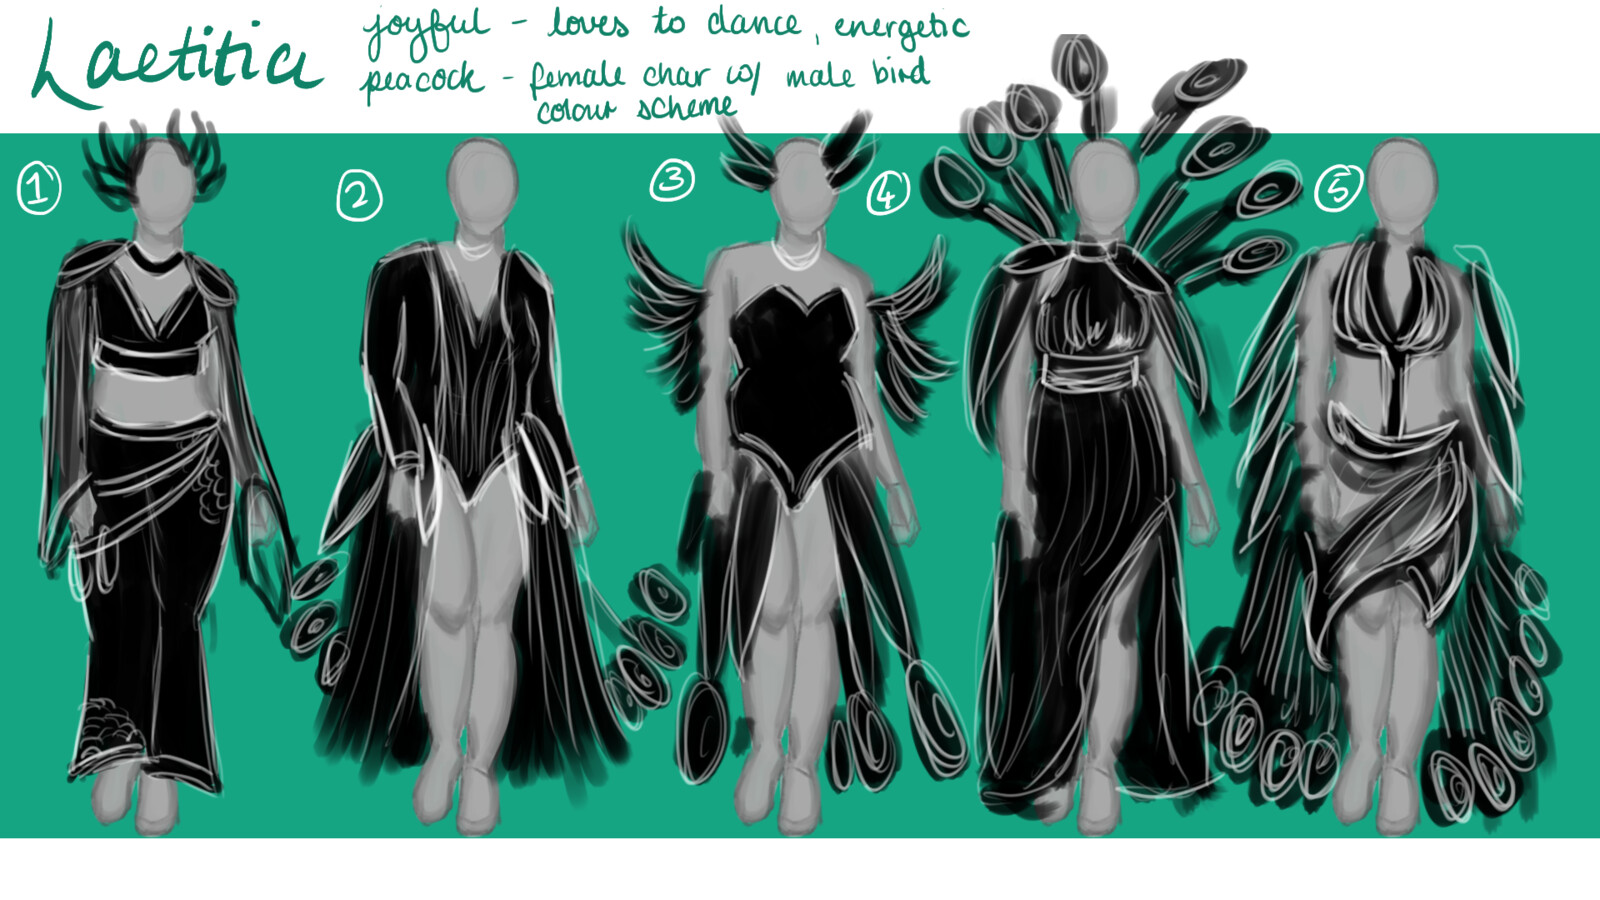 making an outfit she would be able to dance in wasn't the hurdle I faced with silhouettes I had to incorporate the peacock aspect somehow so these are explorations of what could be done